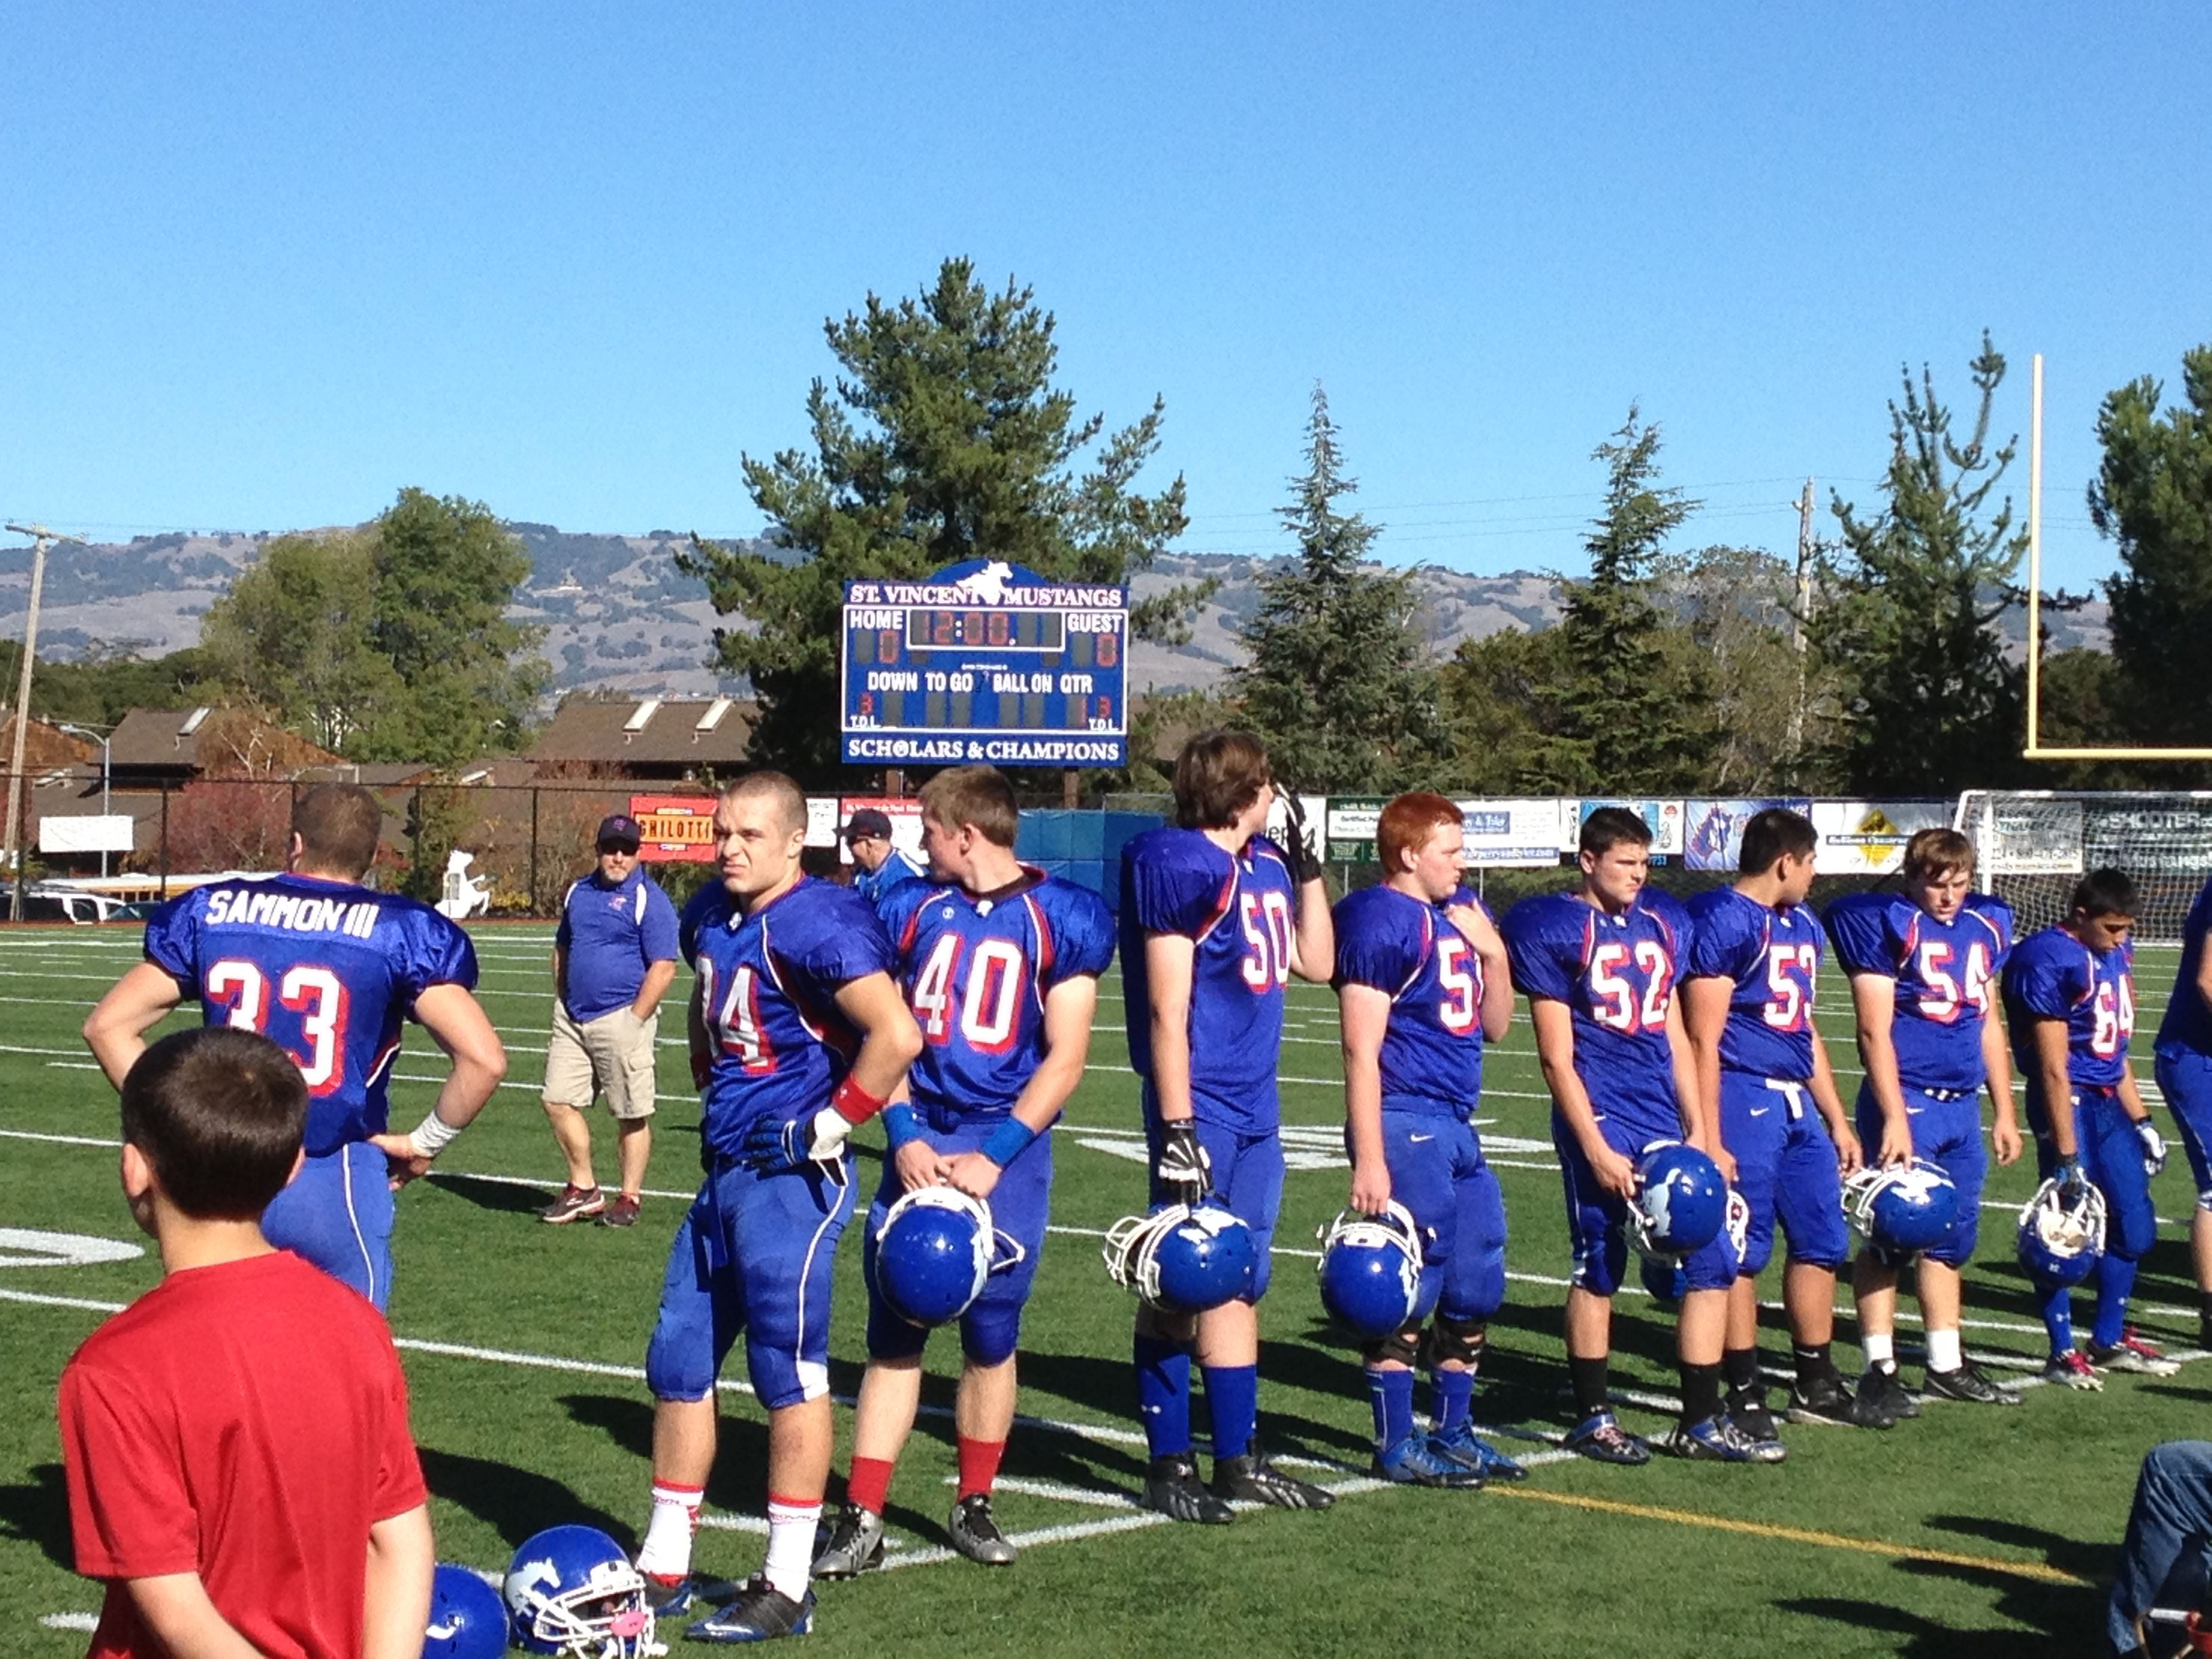 St Vincent Mustangs Football Game Sport Event Football Games